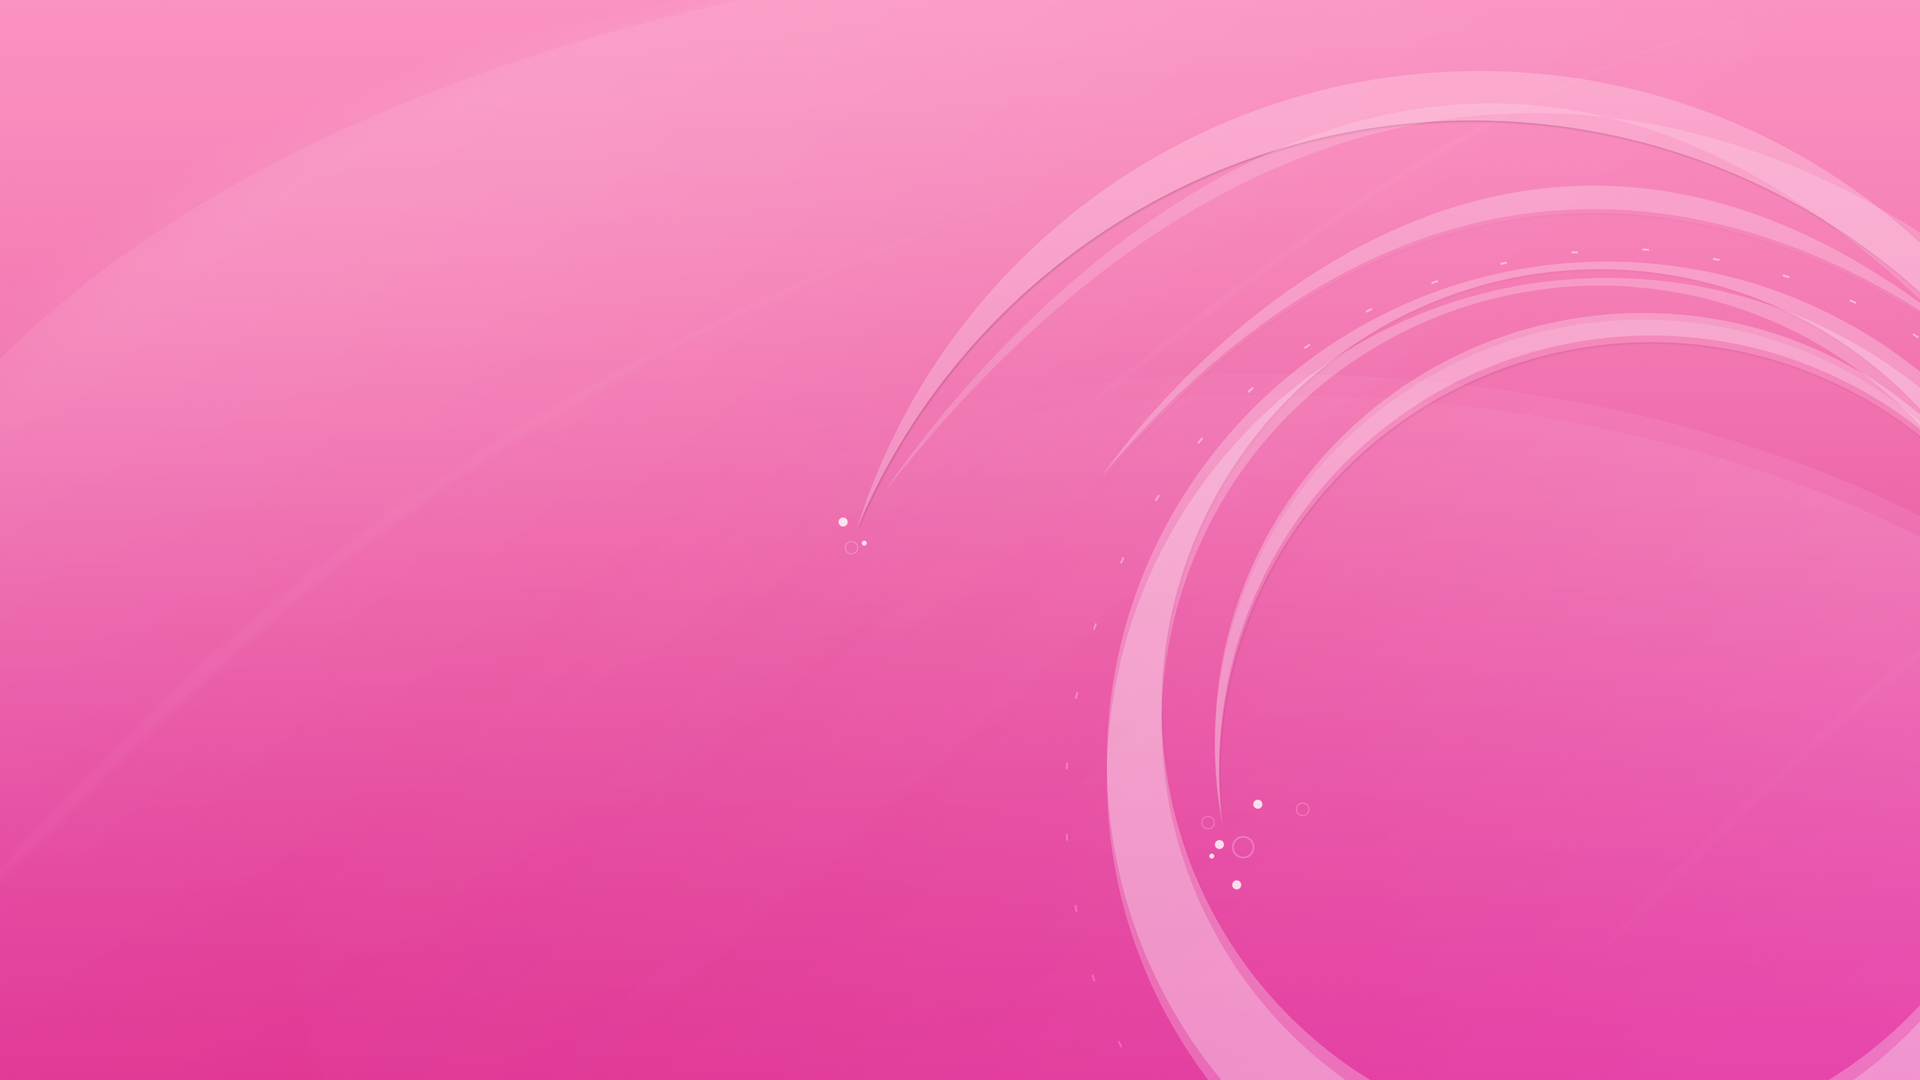 pink mac wallpaper hd - photo #49